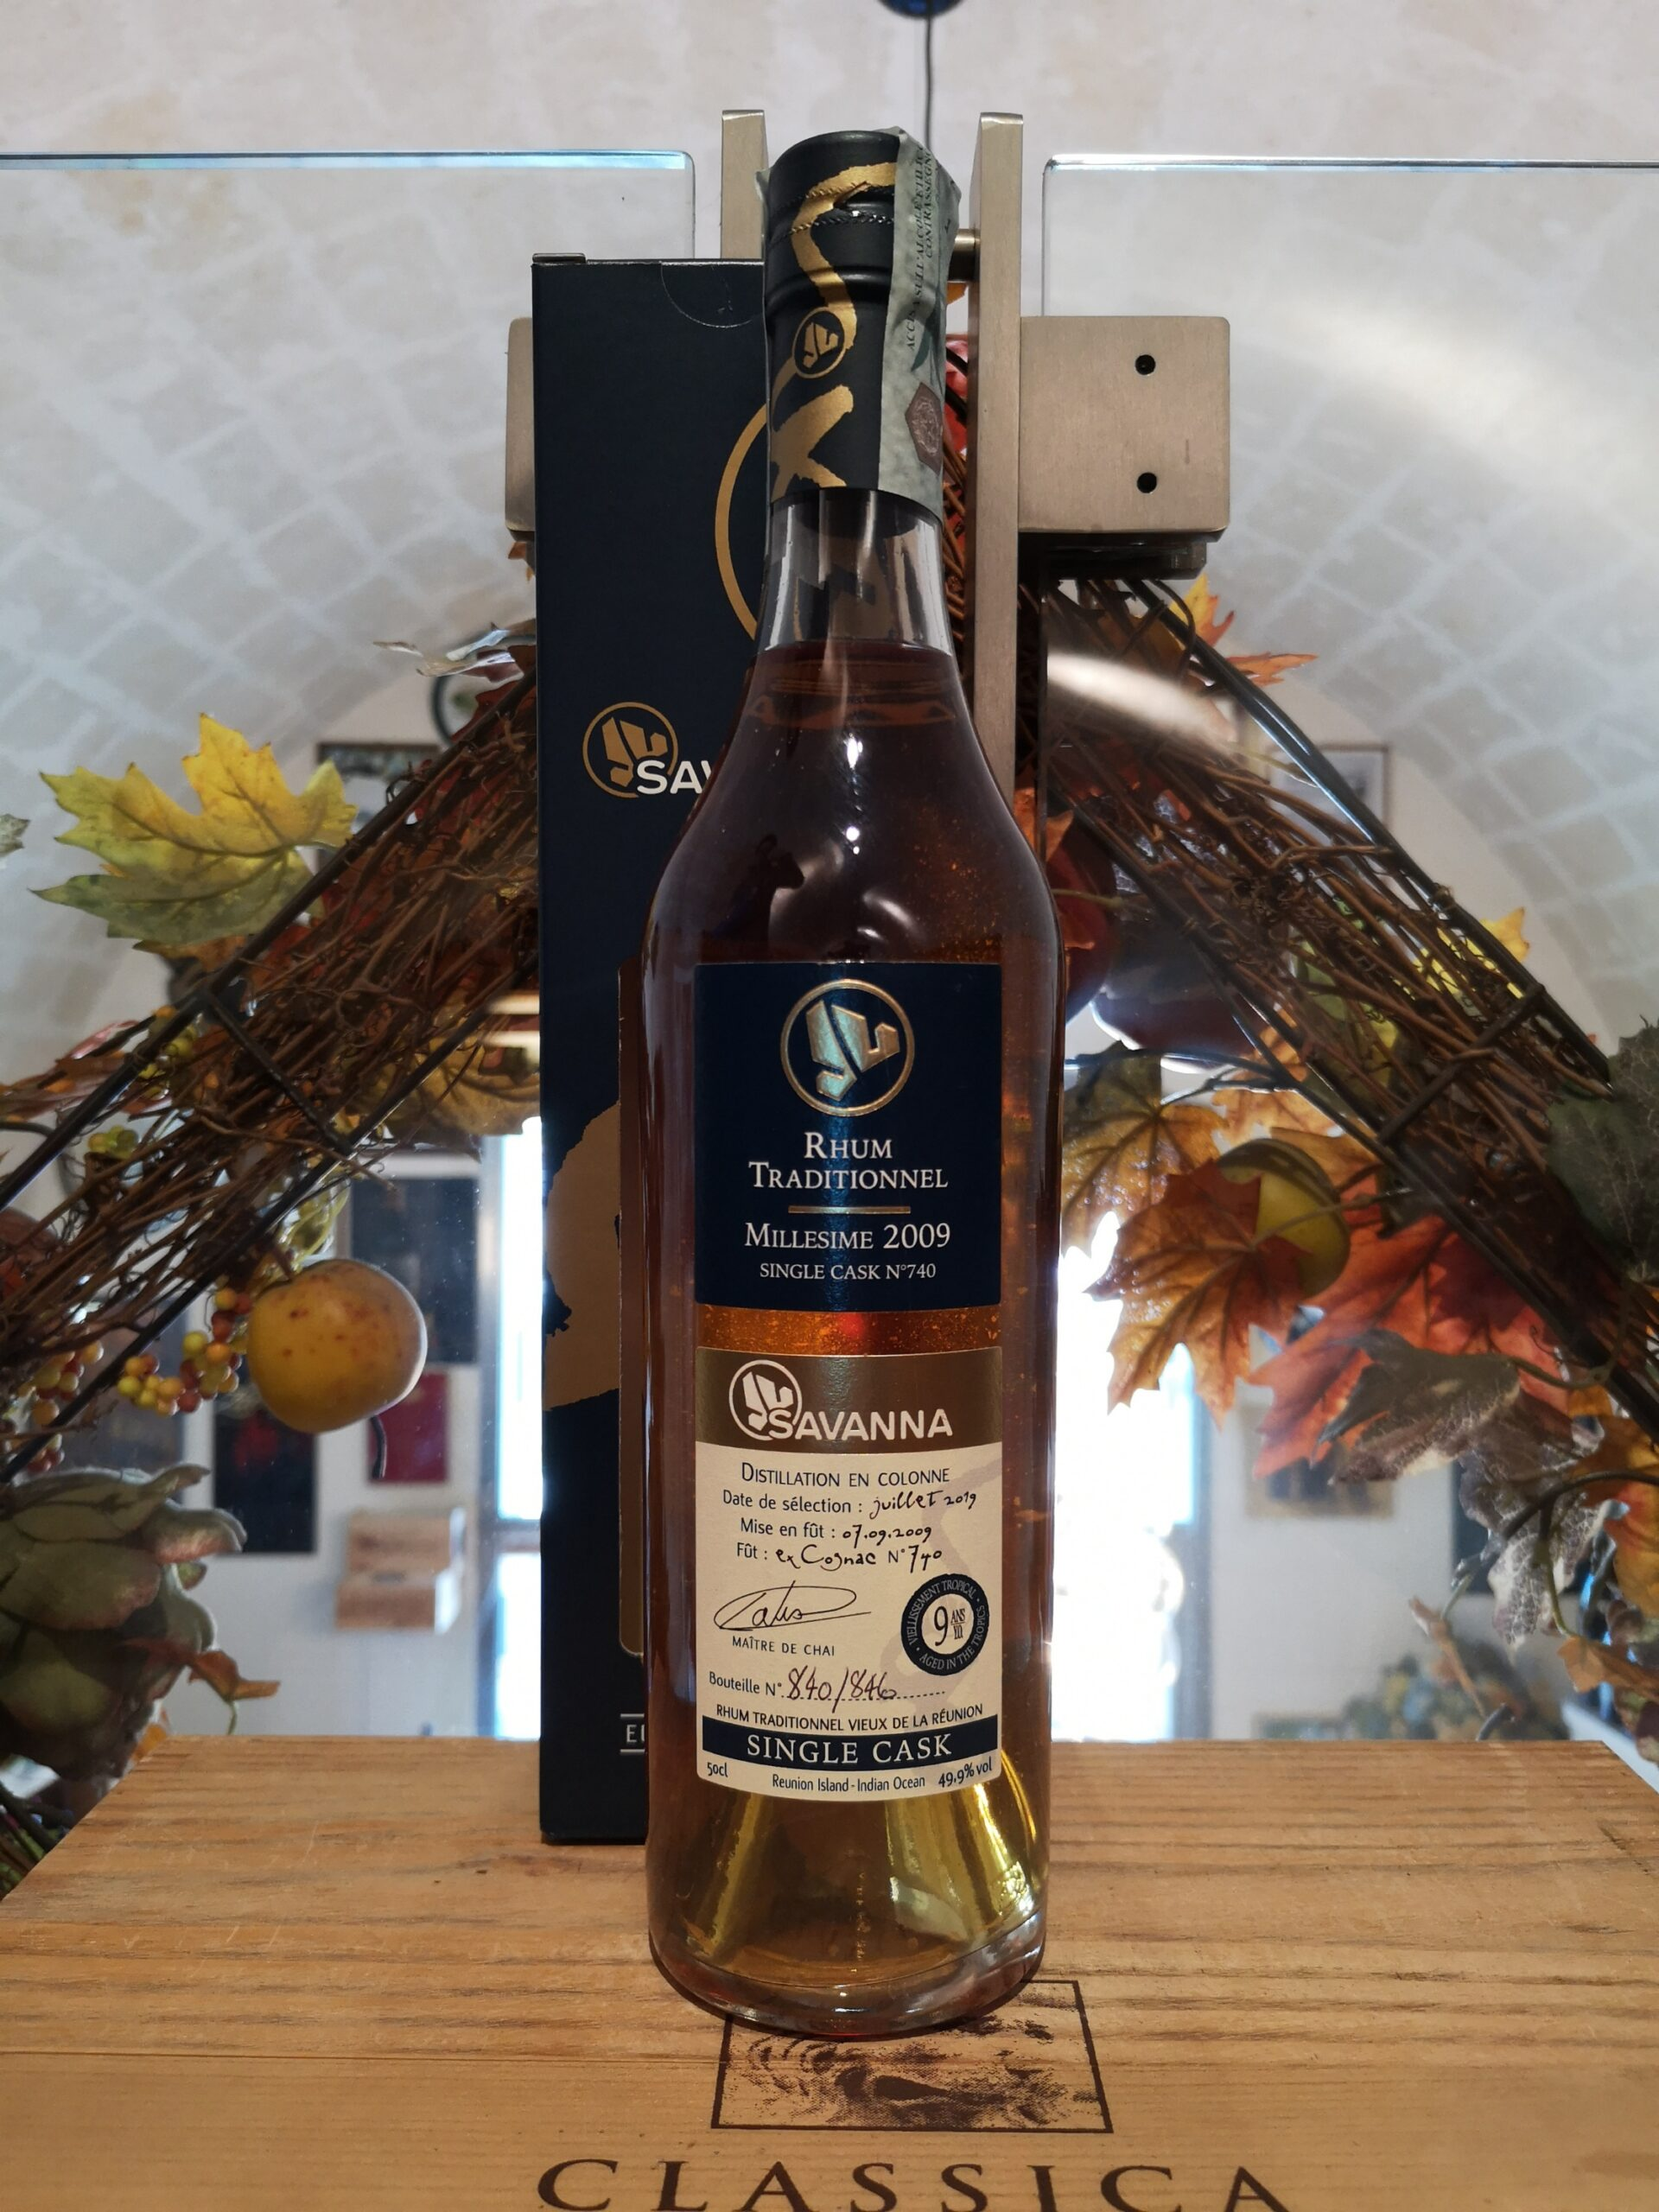 Savanna Rhum Traditionnel 2009 9 YO Cask 740